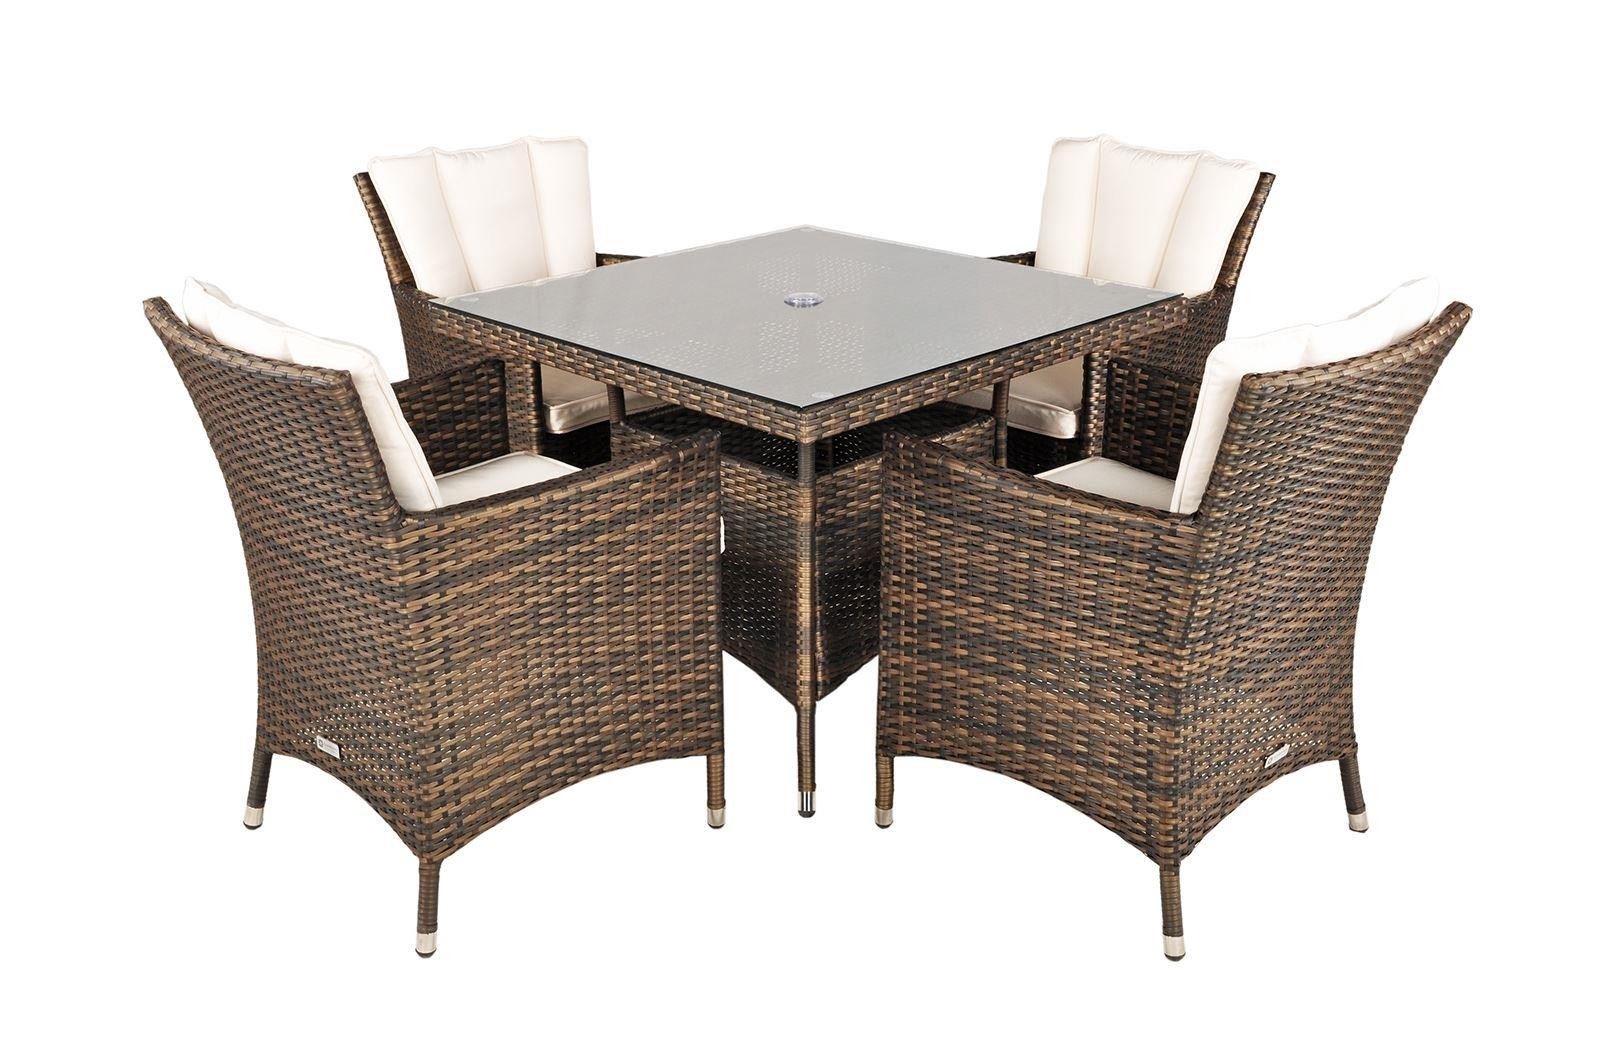 savannah rattan garden furniture 4 seat dining set - Rattan Garden Furniture 4 Seater